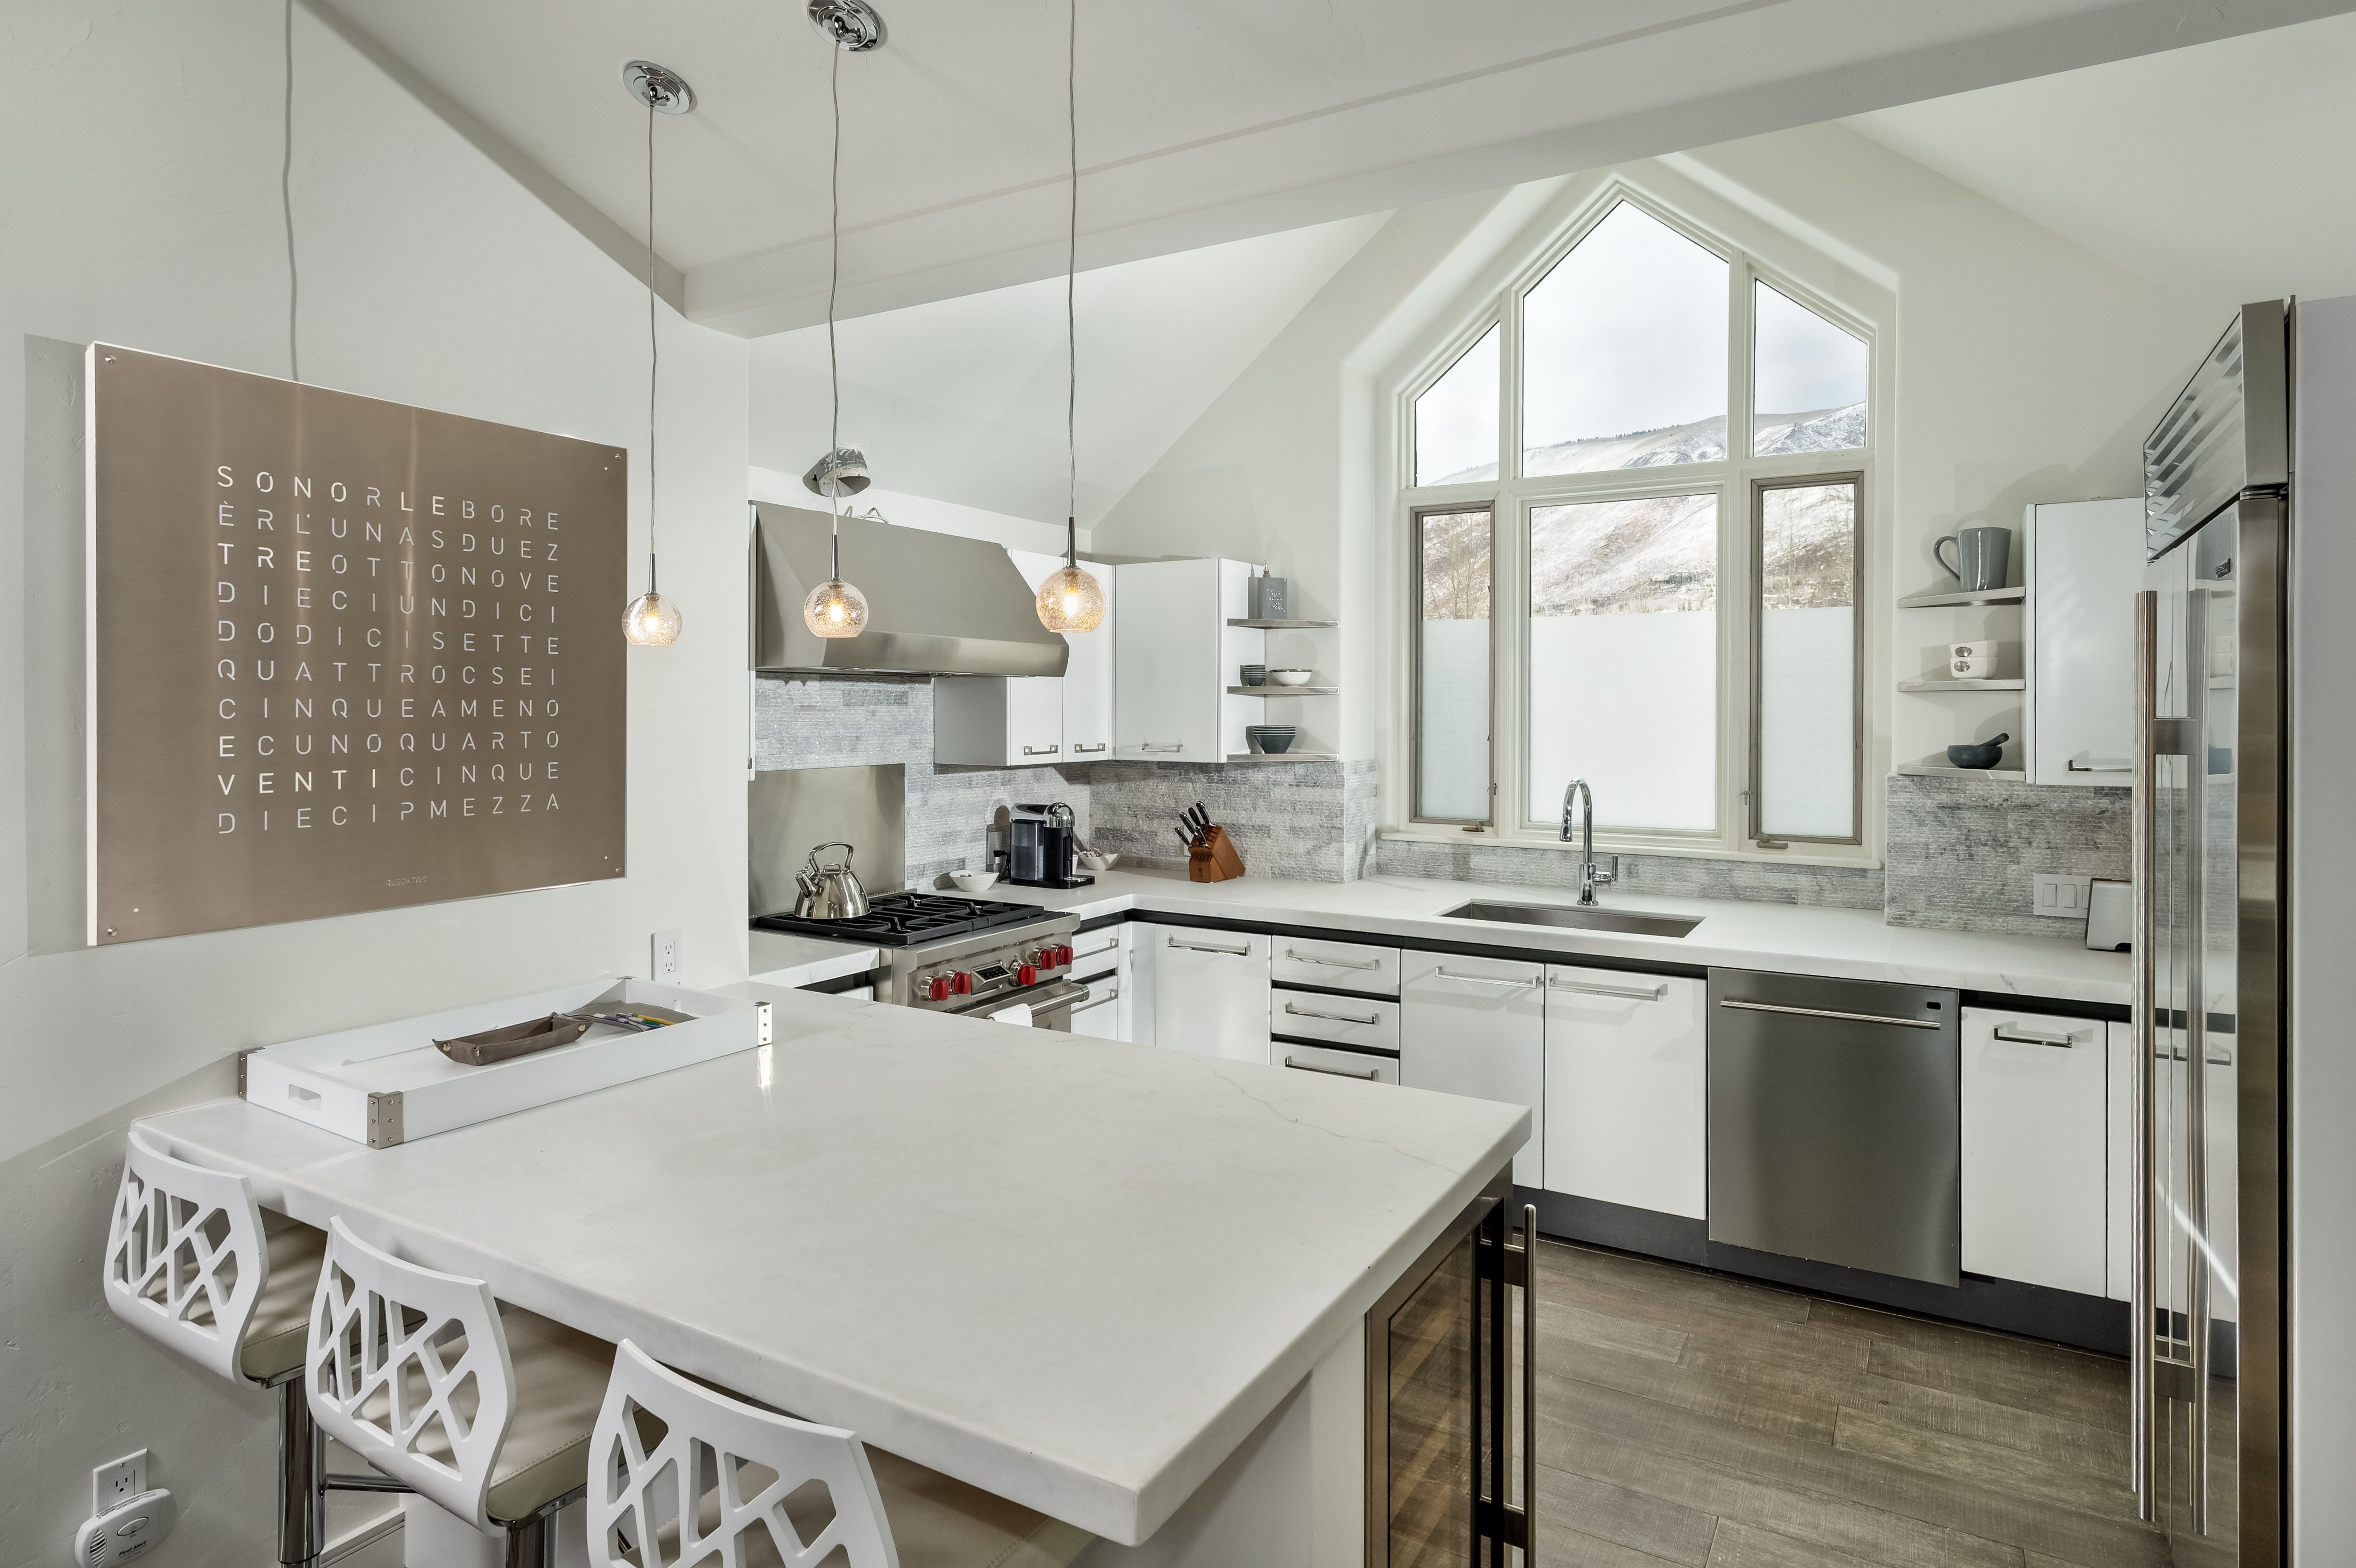 Eat-in kitchen #art #cool # white kitchen #pendant | RSI project ...